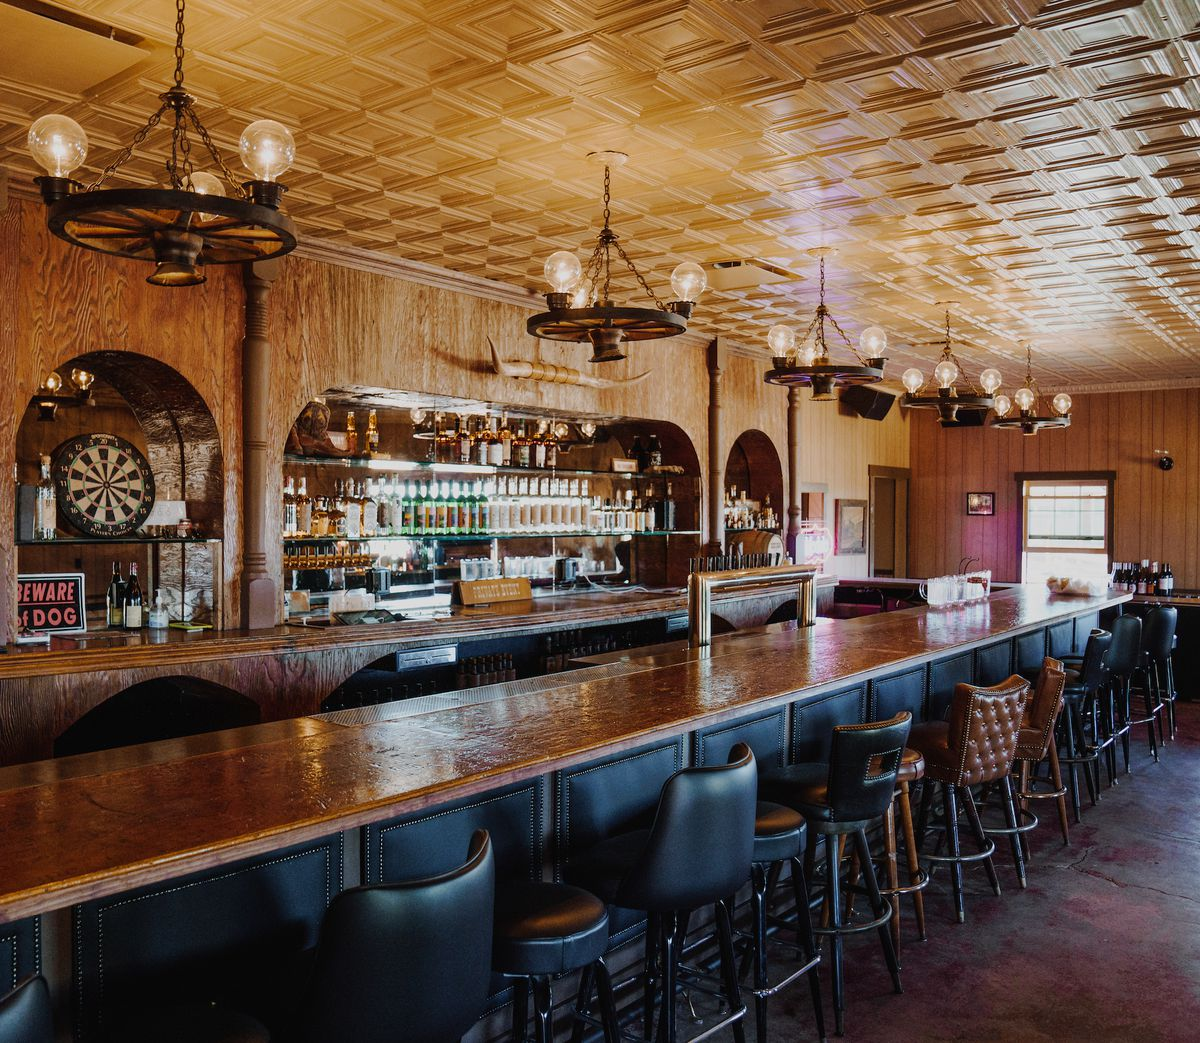 The dimly lit interior of a Western bar with leather stools.